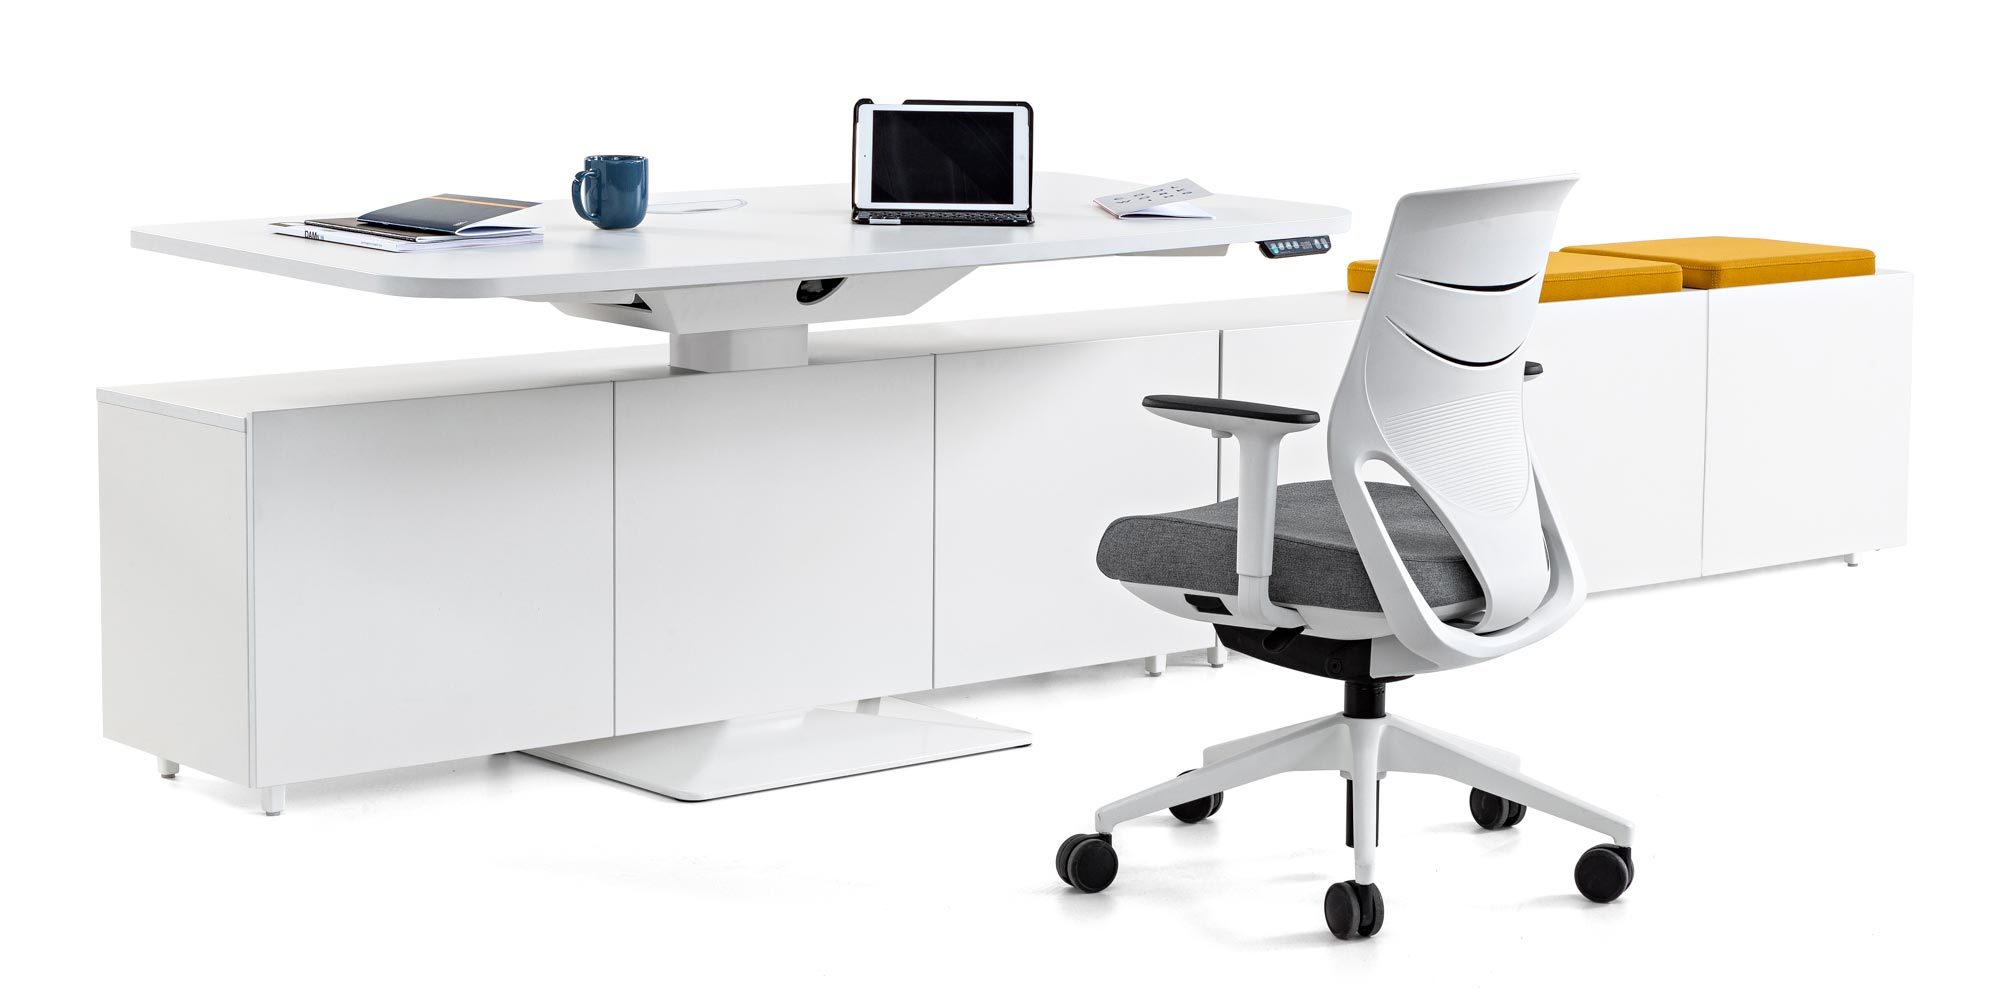 desk power tables personal cabinets storage combination efit chair white grey armrest tablet coffecup books synchrony technology design adjustable quality adaptable masof actiu